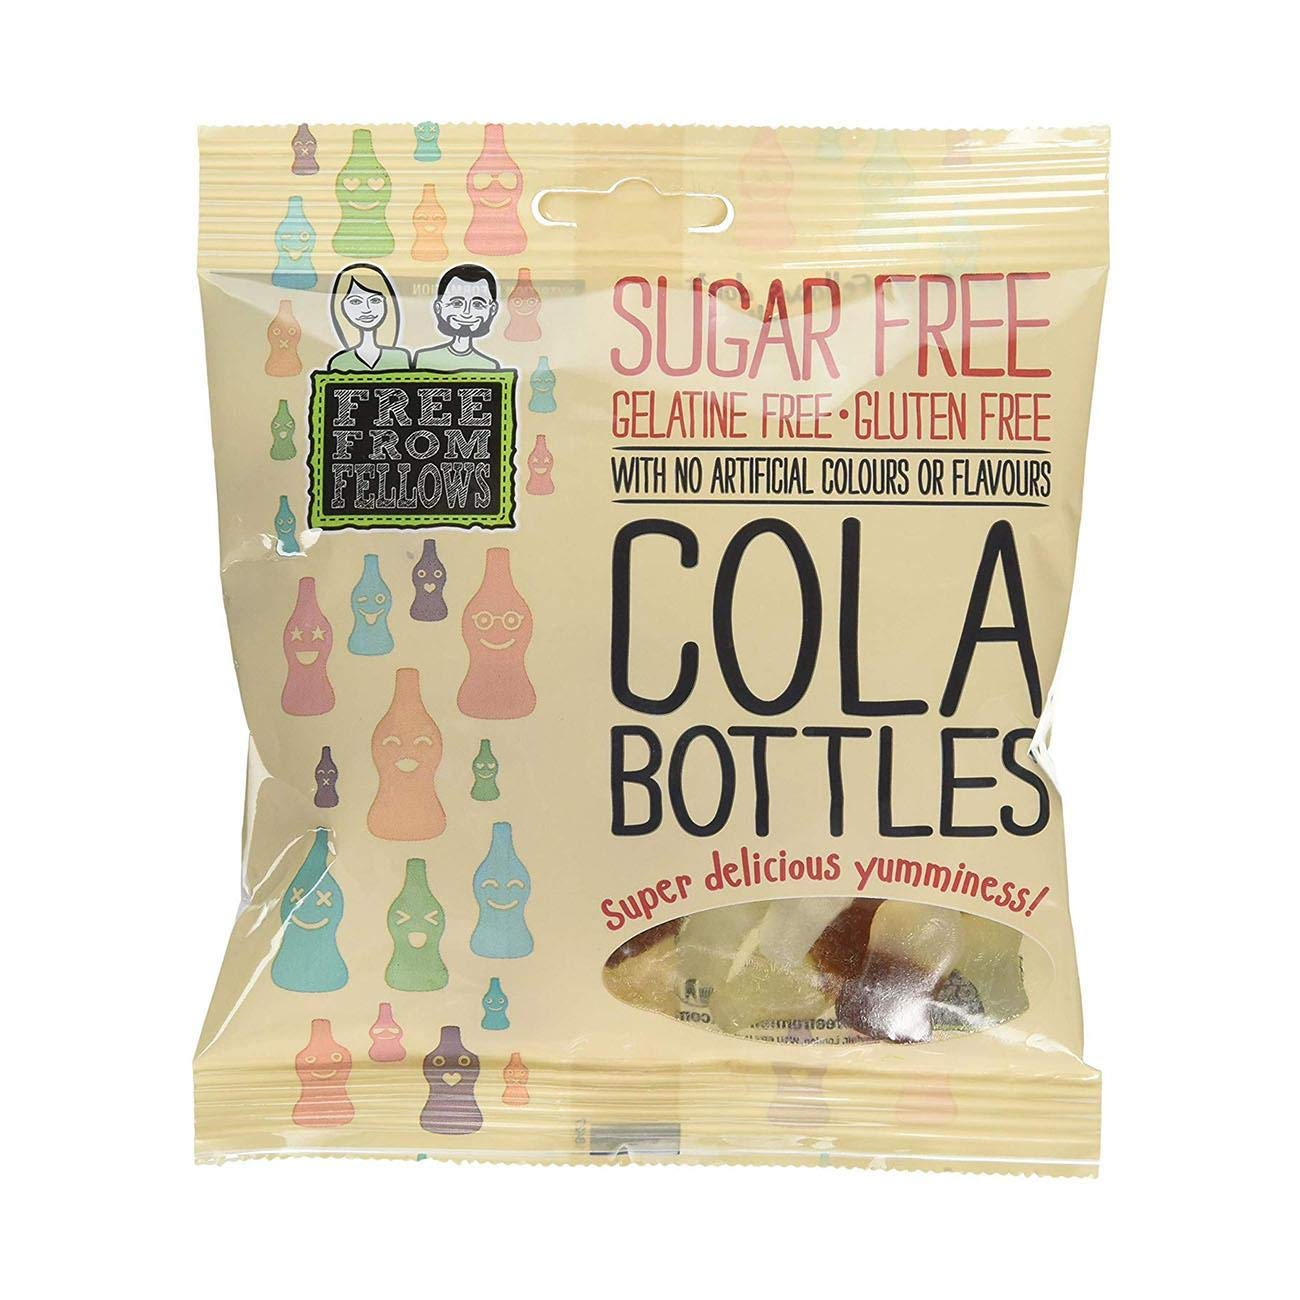 10 x Free From Fellows Sugar Free Cola Bottles Sweets 3.5oz by Free From Fellows